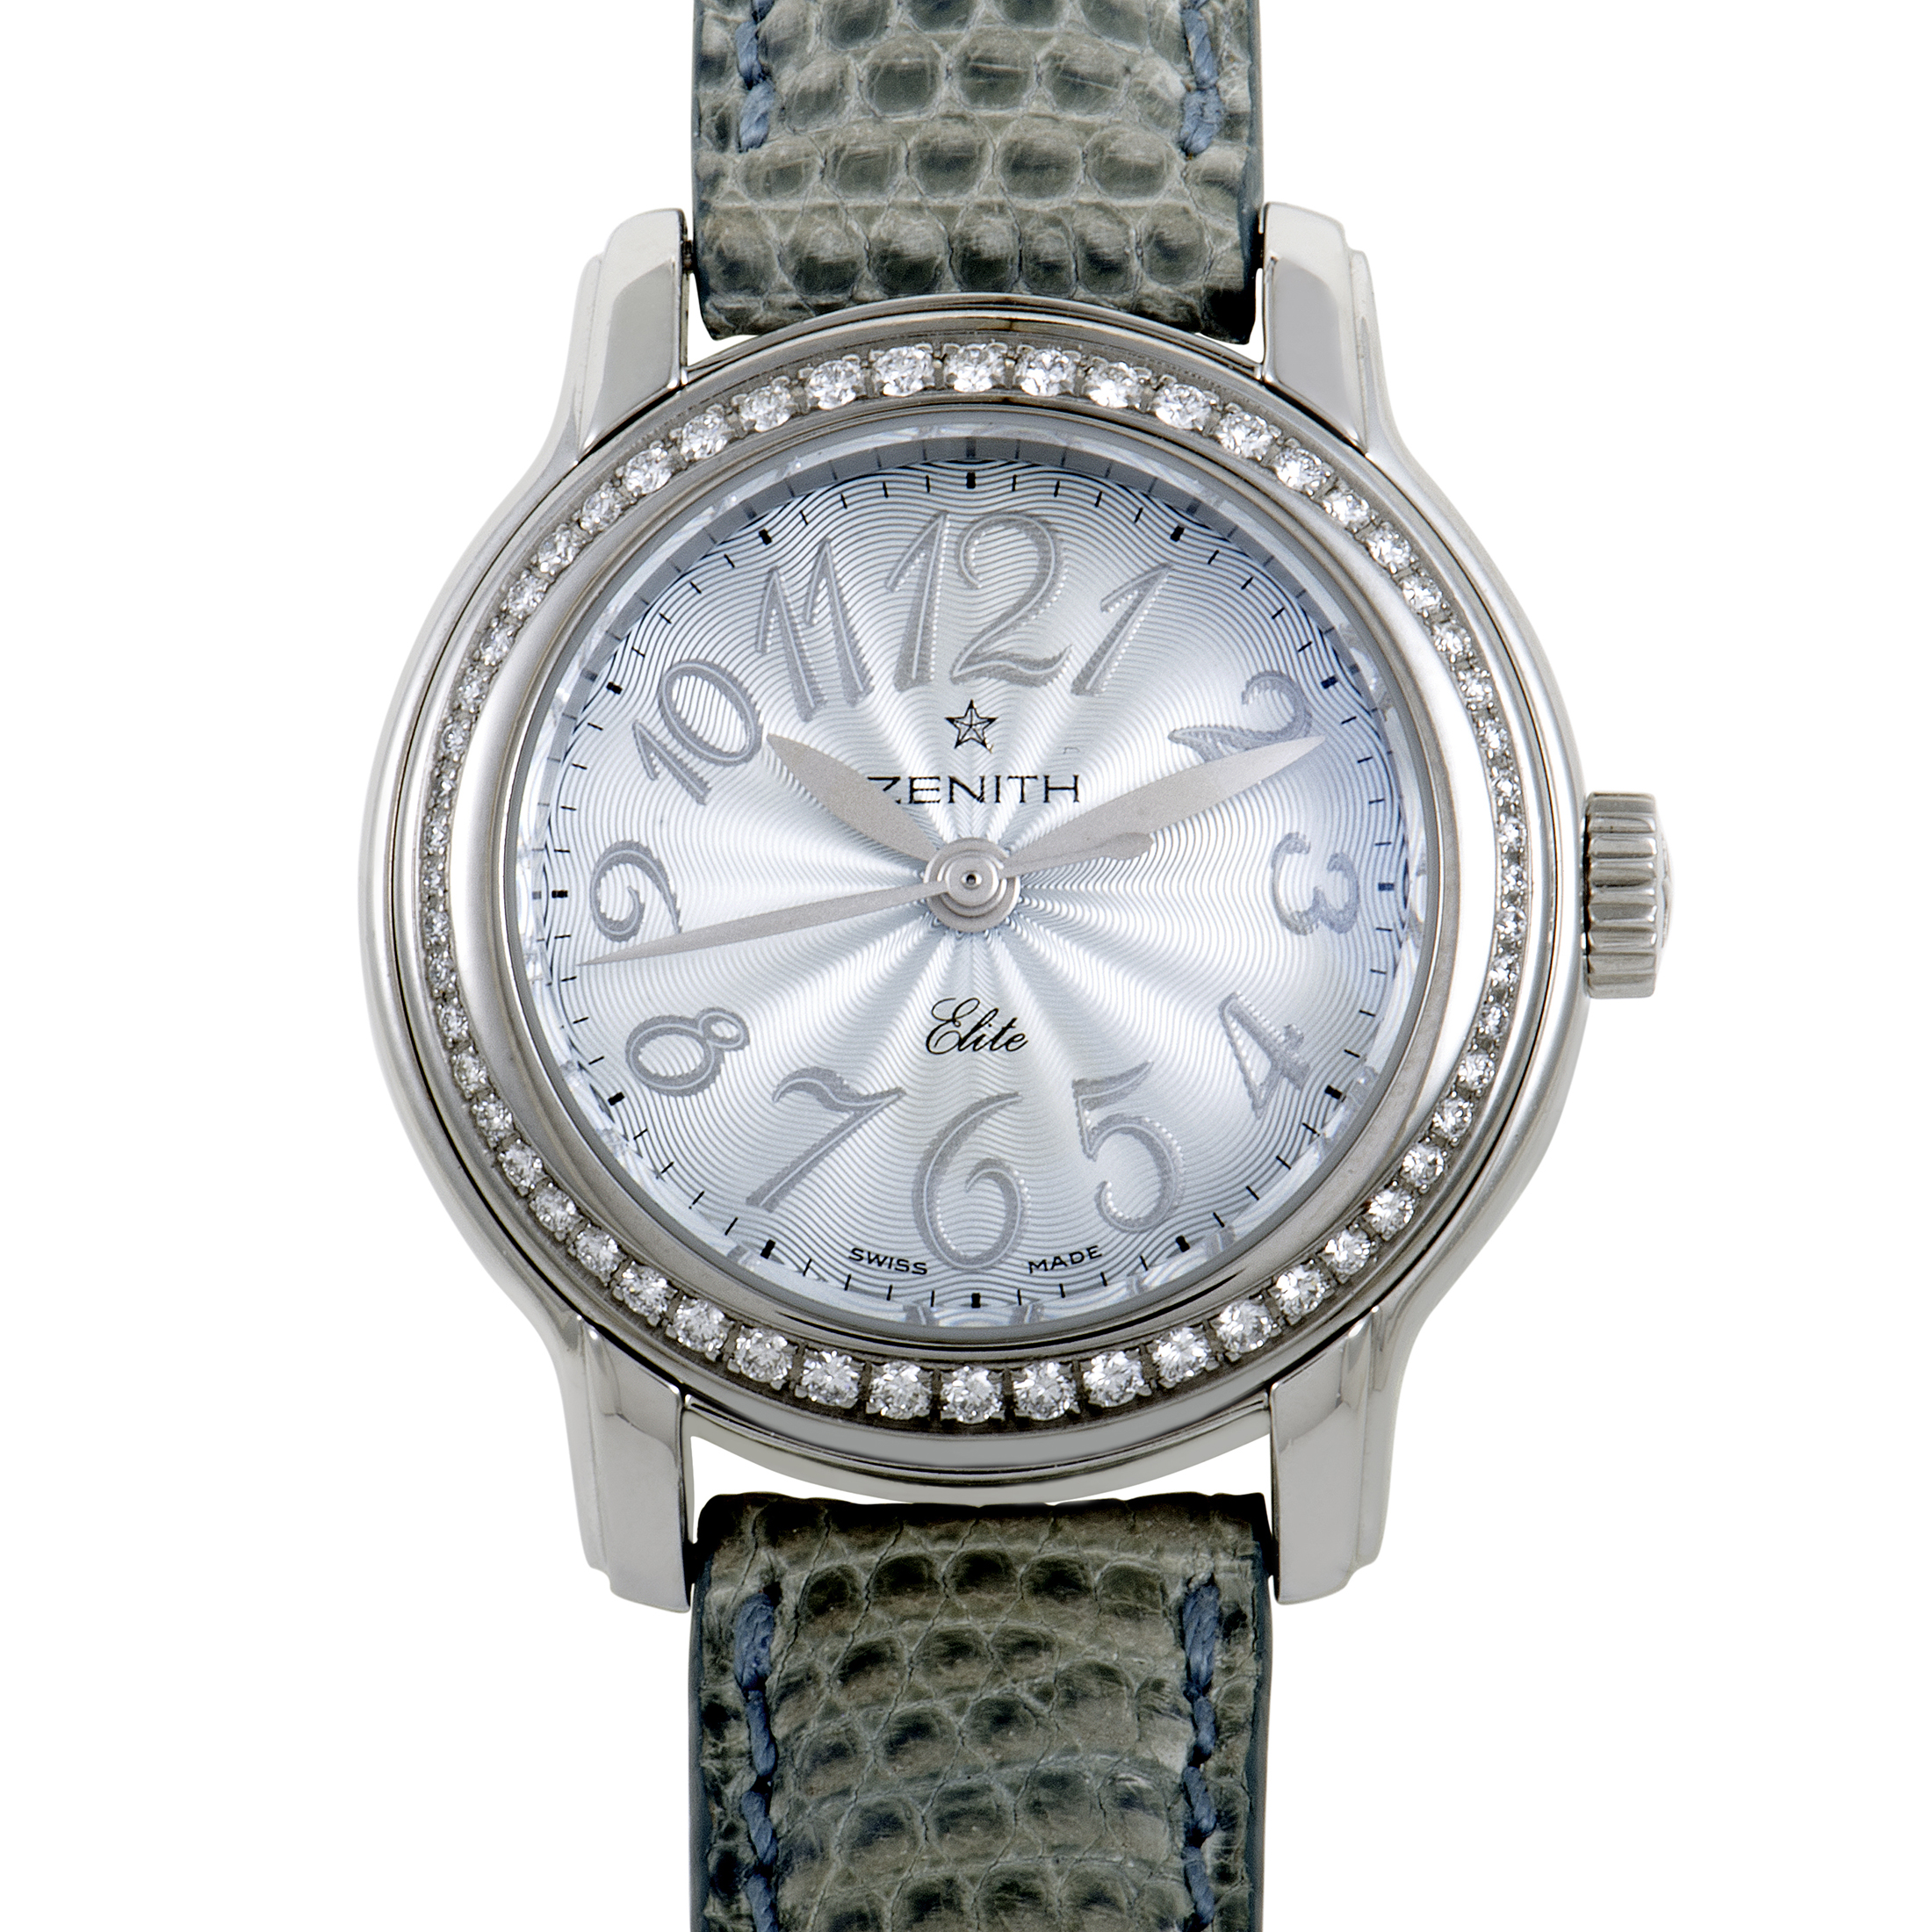 Baby Star Elite Diamonds Ladies Quartz Watch 16.1220.67/51.c532